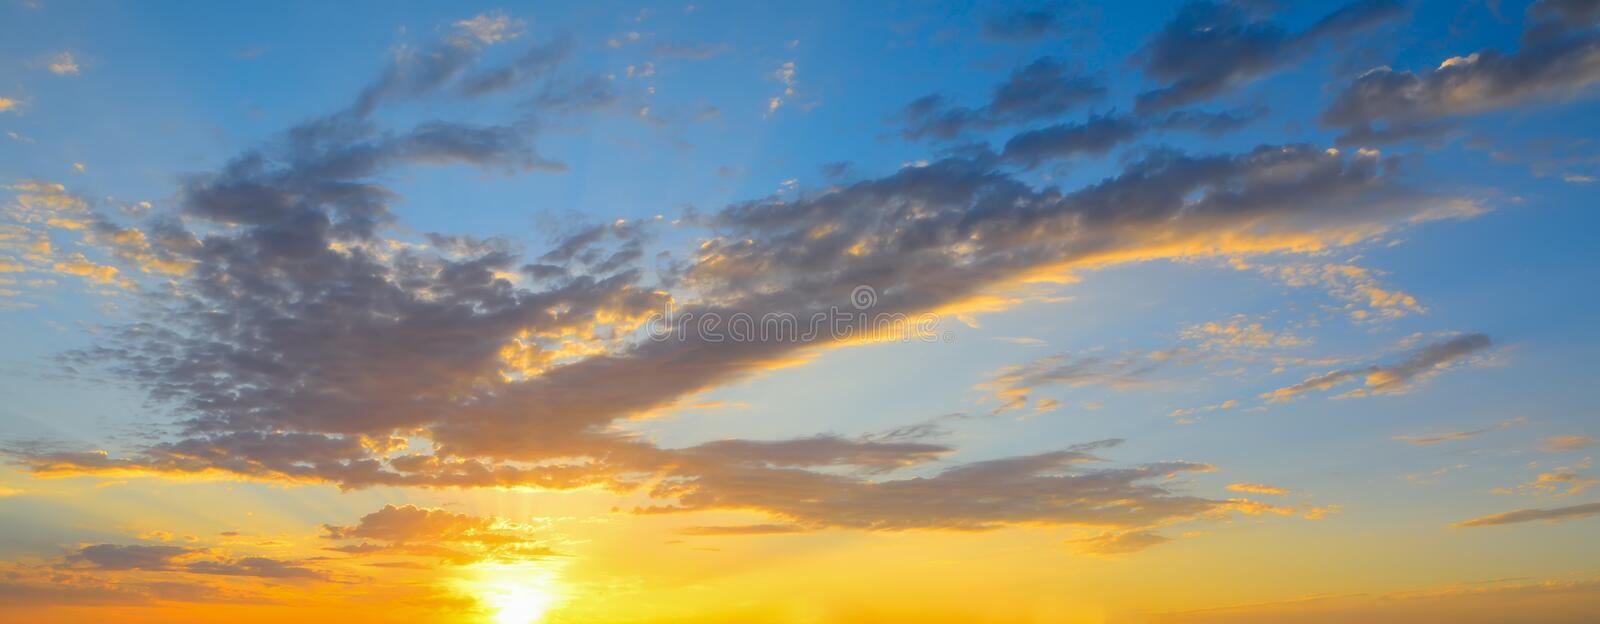 Colorful sky at sunset. Sardinia stock photo